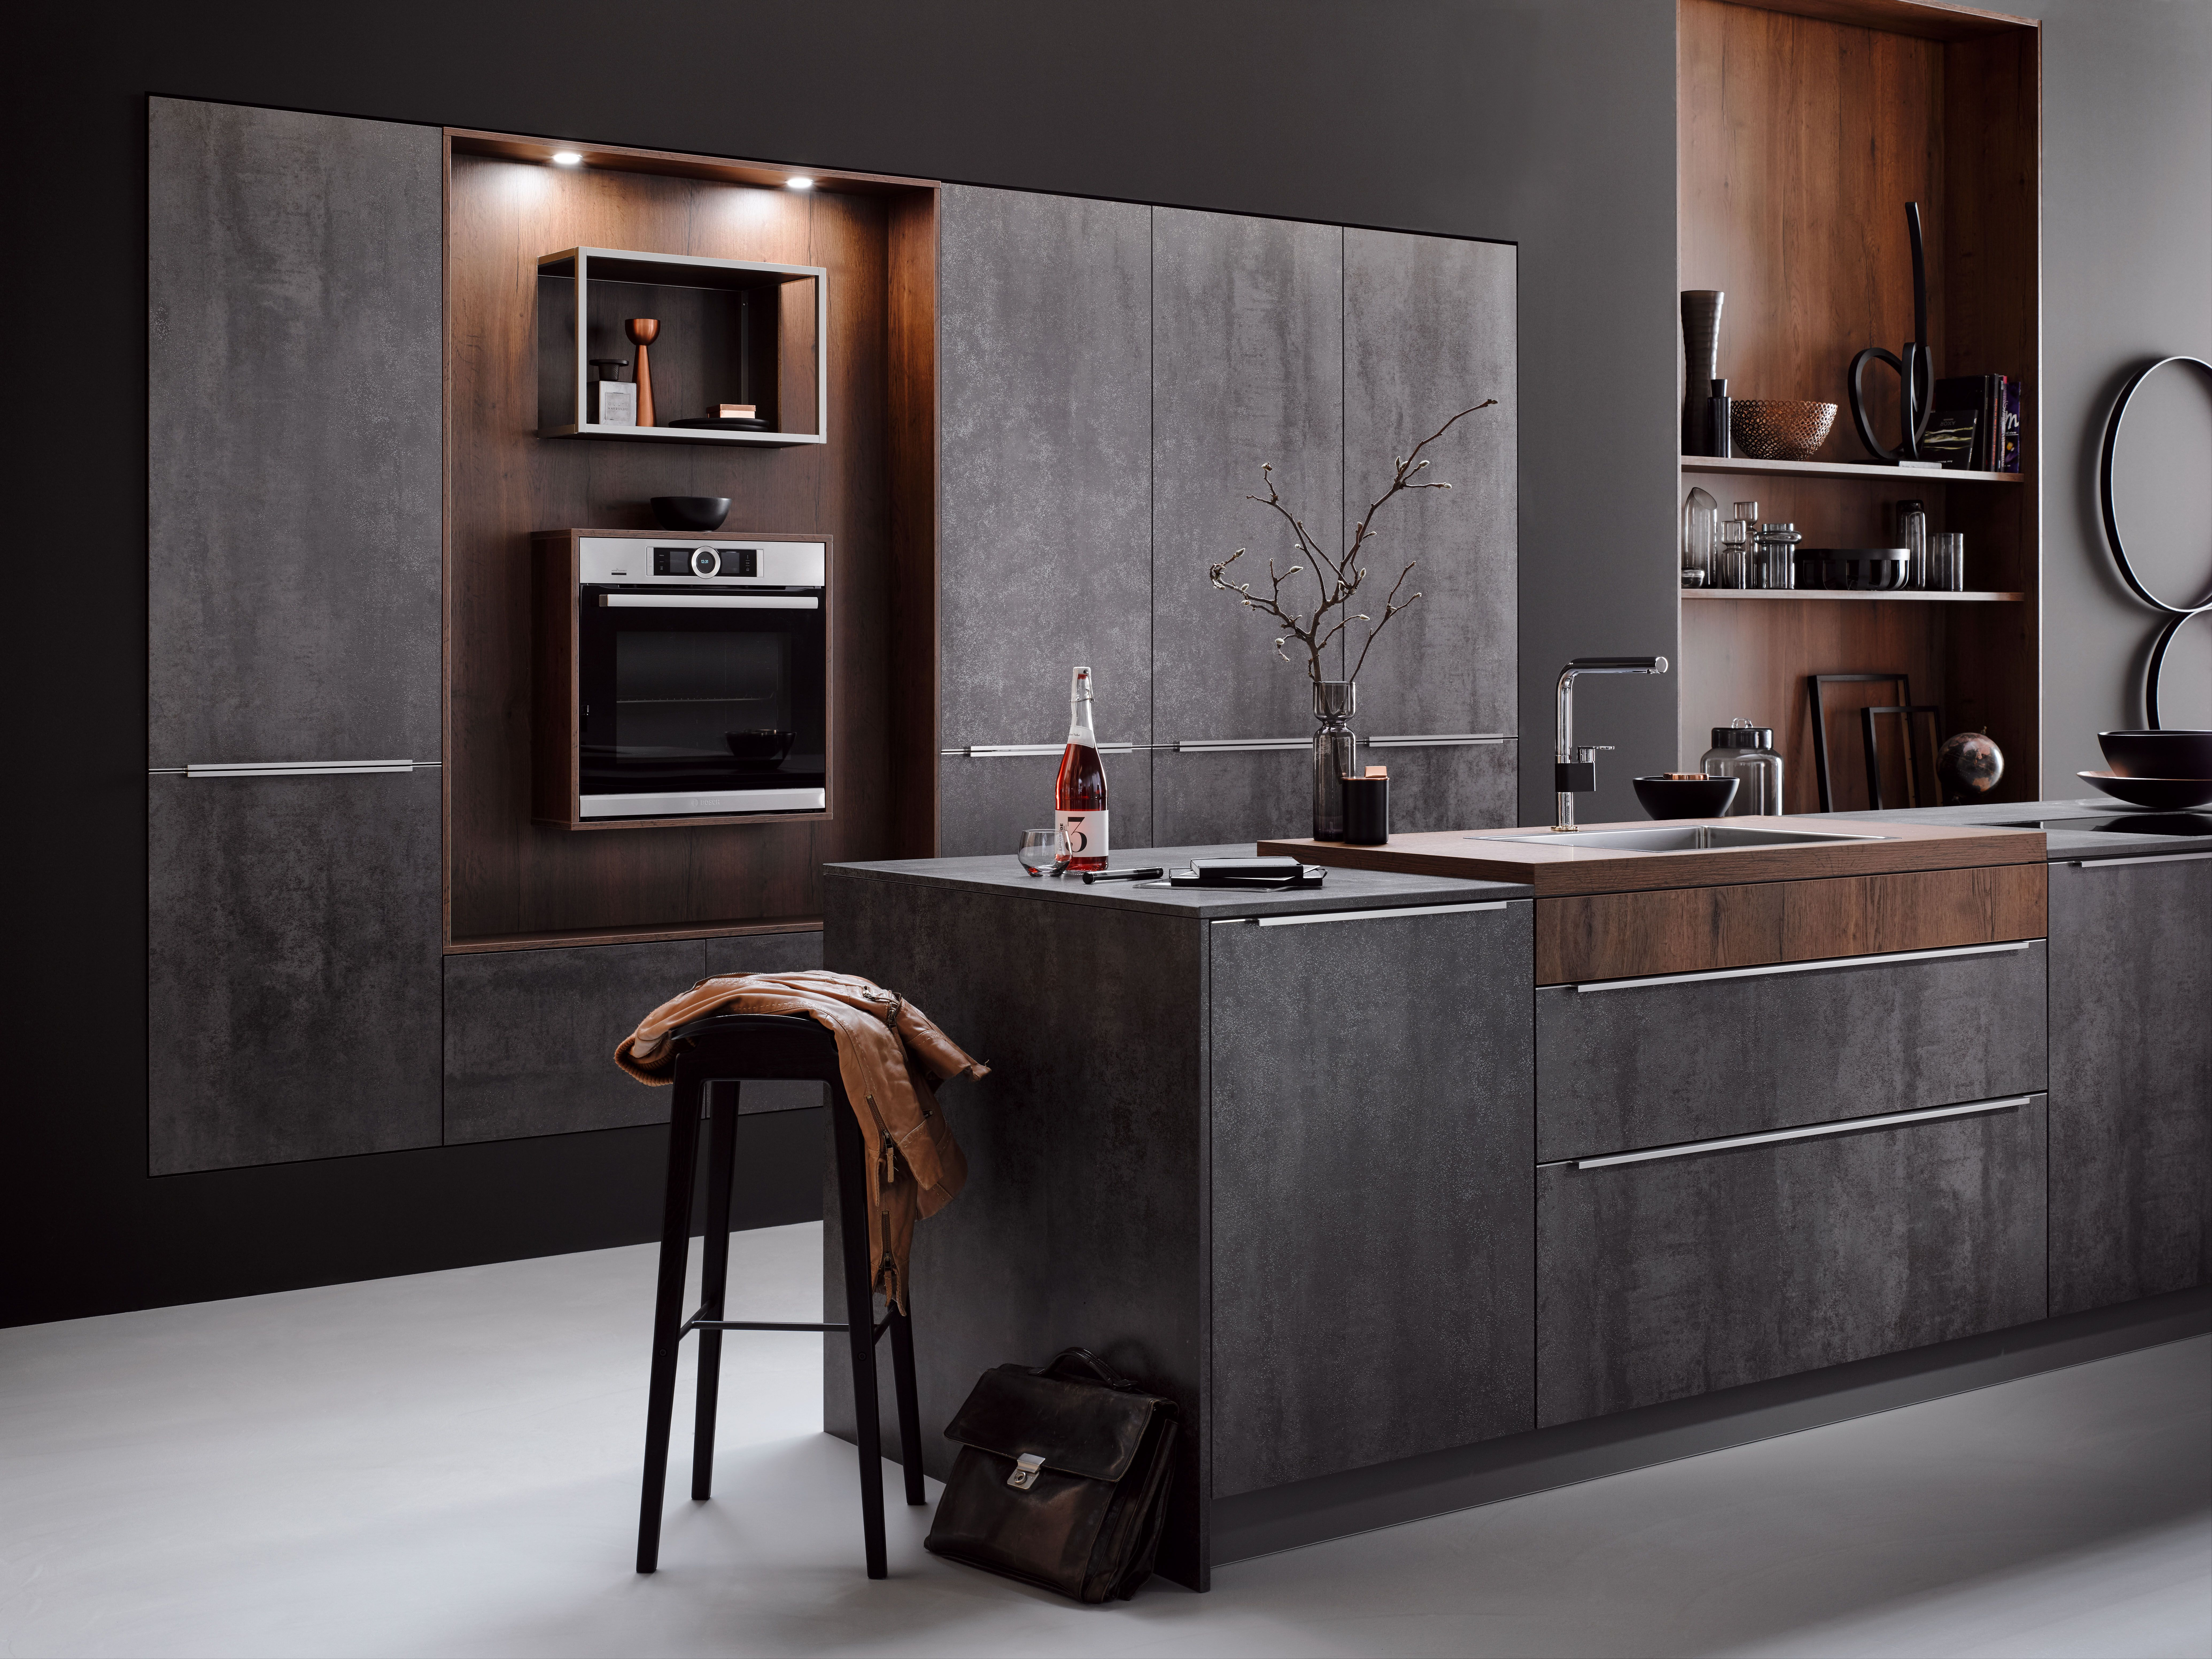 Häcker Küche Systemat Av 2035 Av8000 Iron Grey Häcker Küche Systemat 2019 In 2019 Kitchen